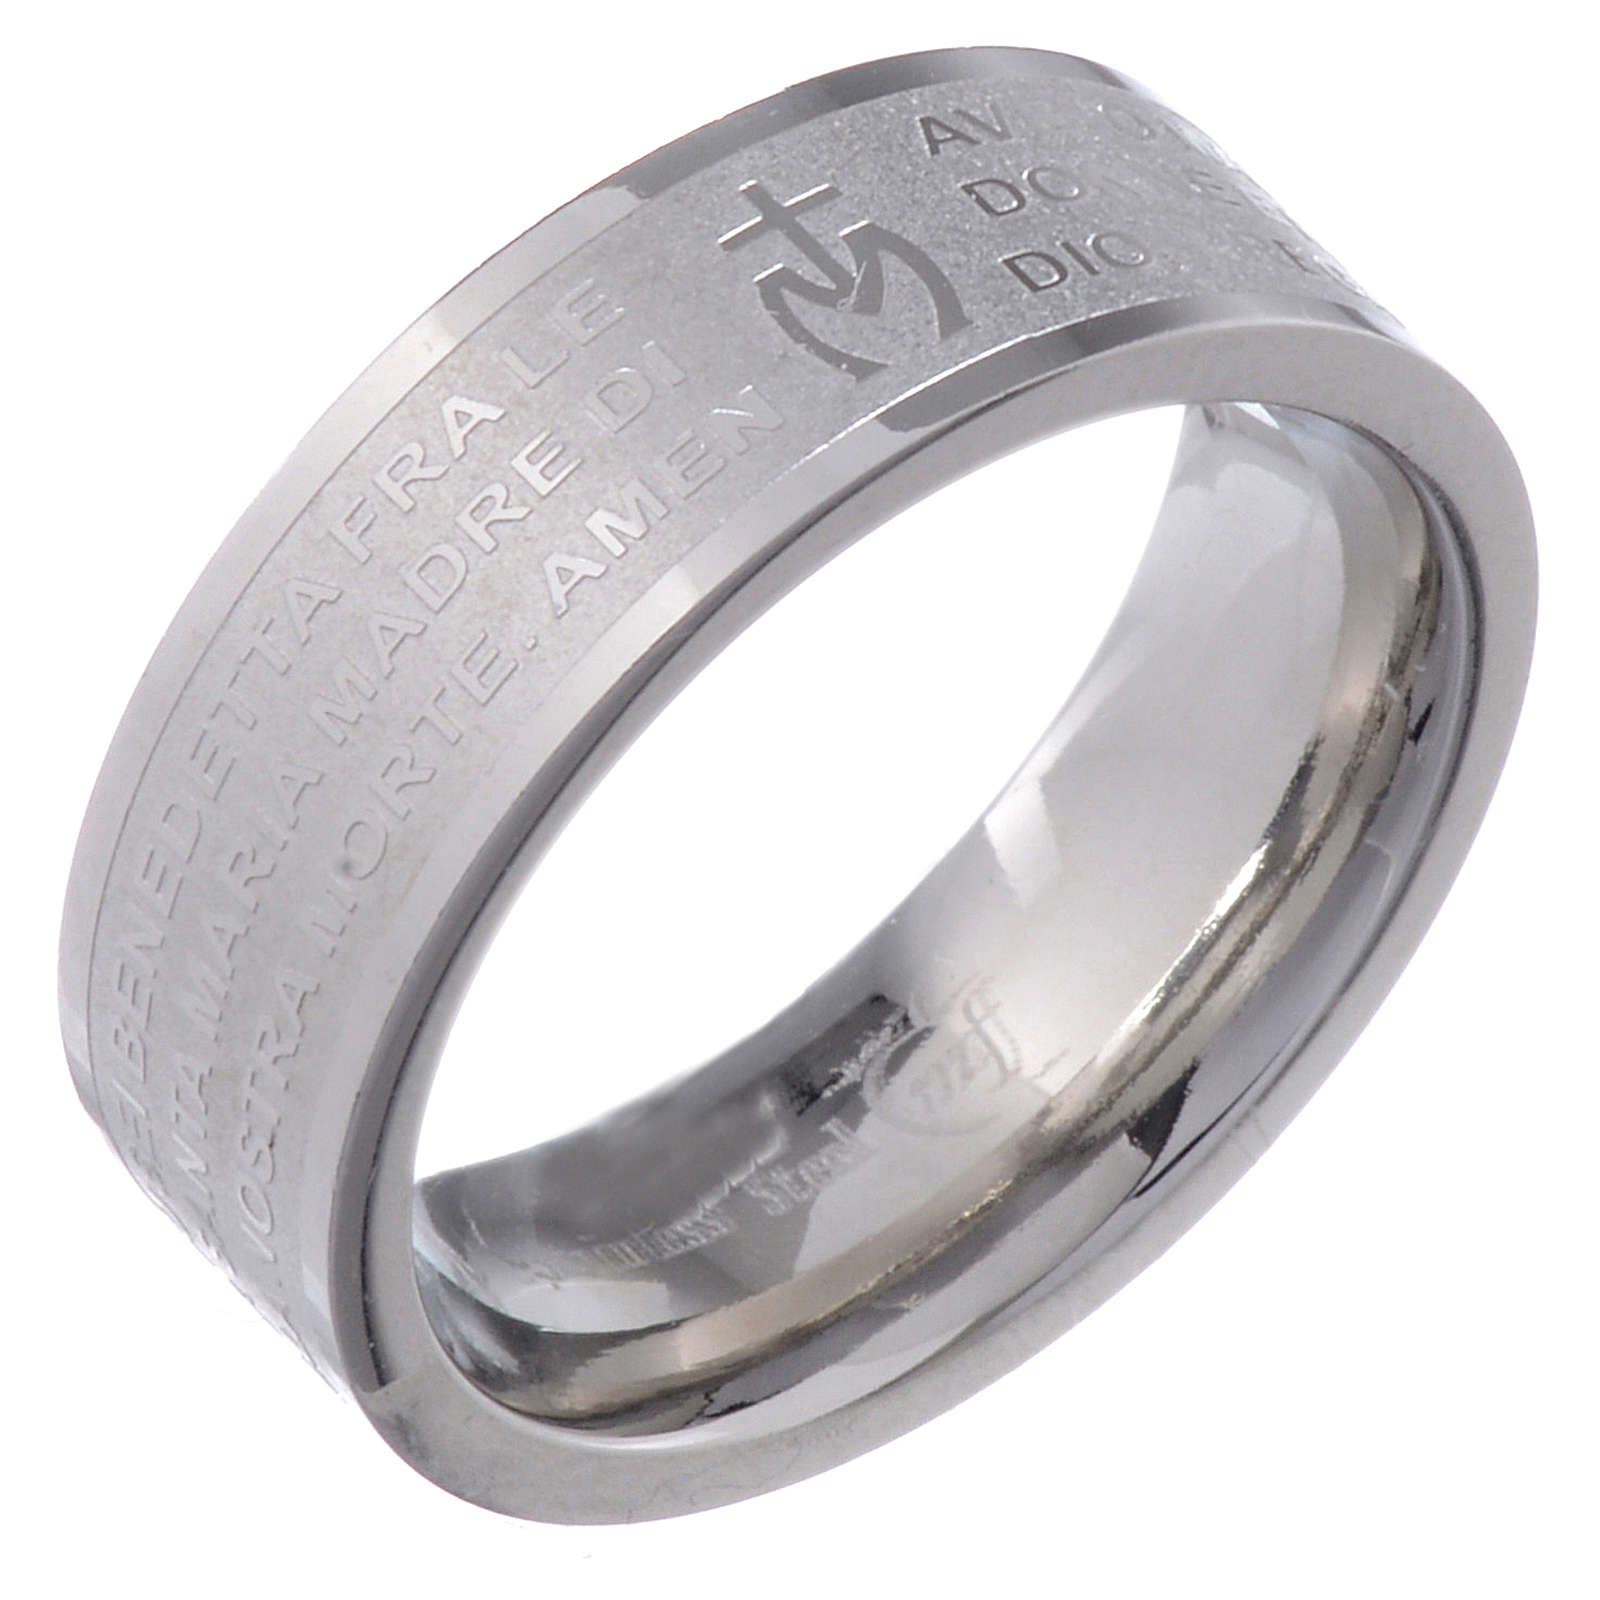 Hail Mary prayer ring in Italian - stainless steel LUX 3